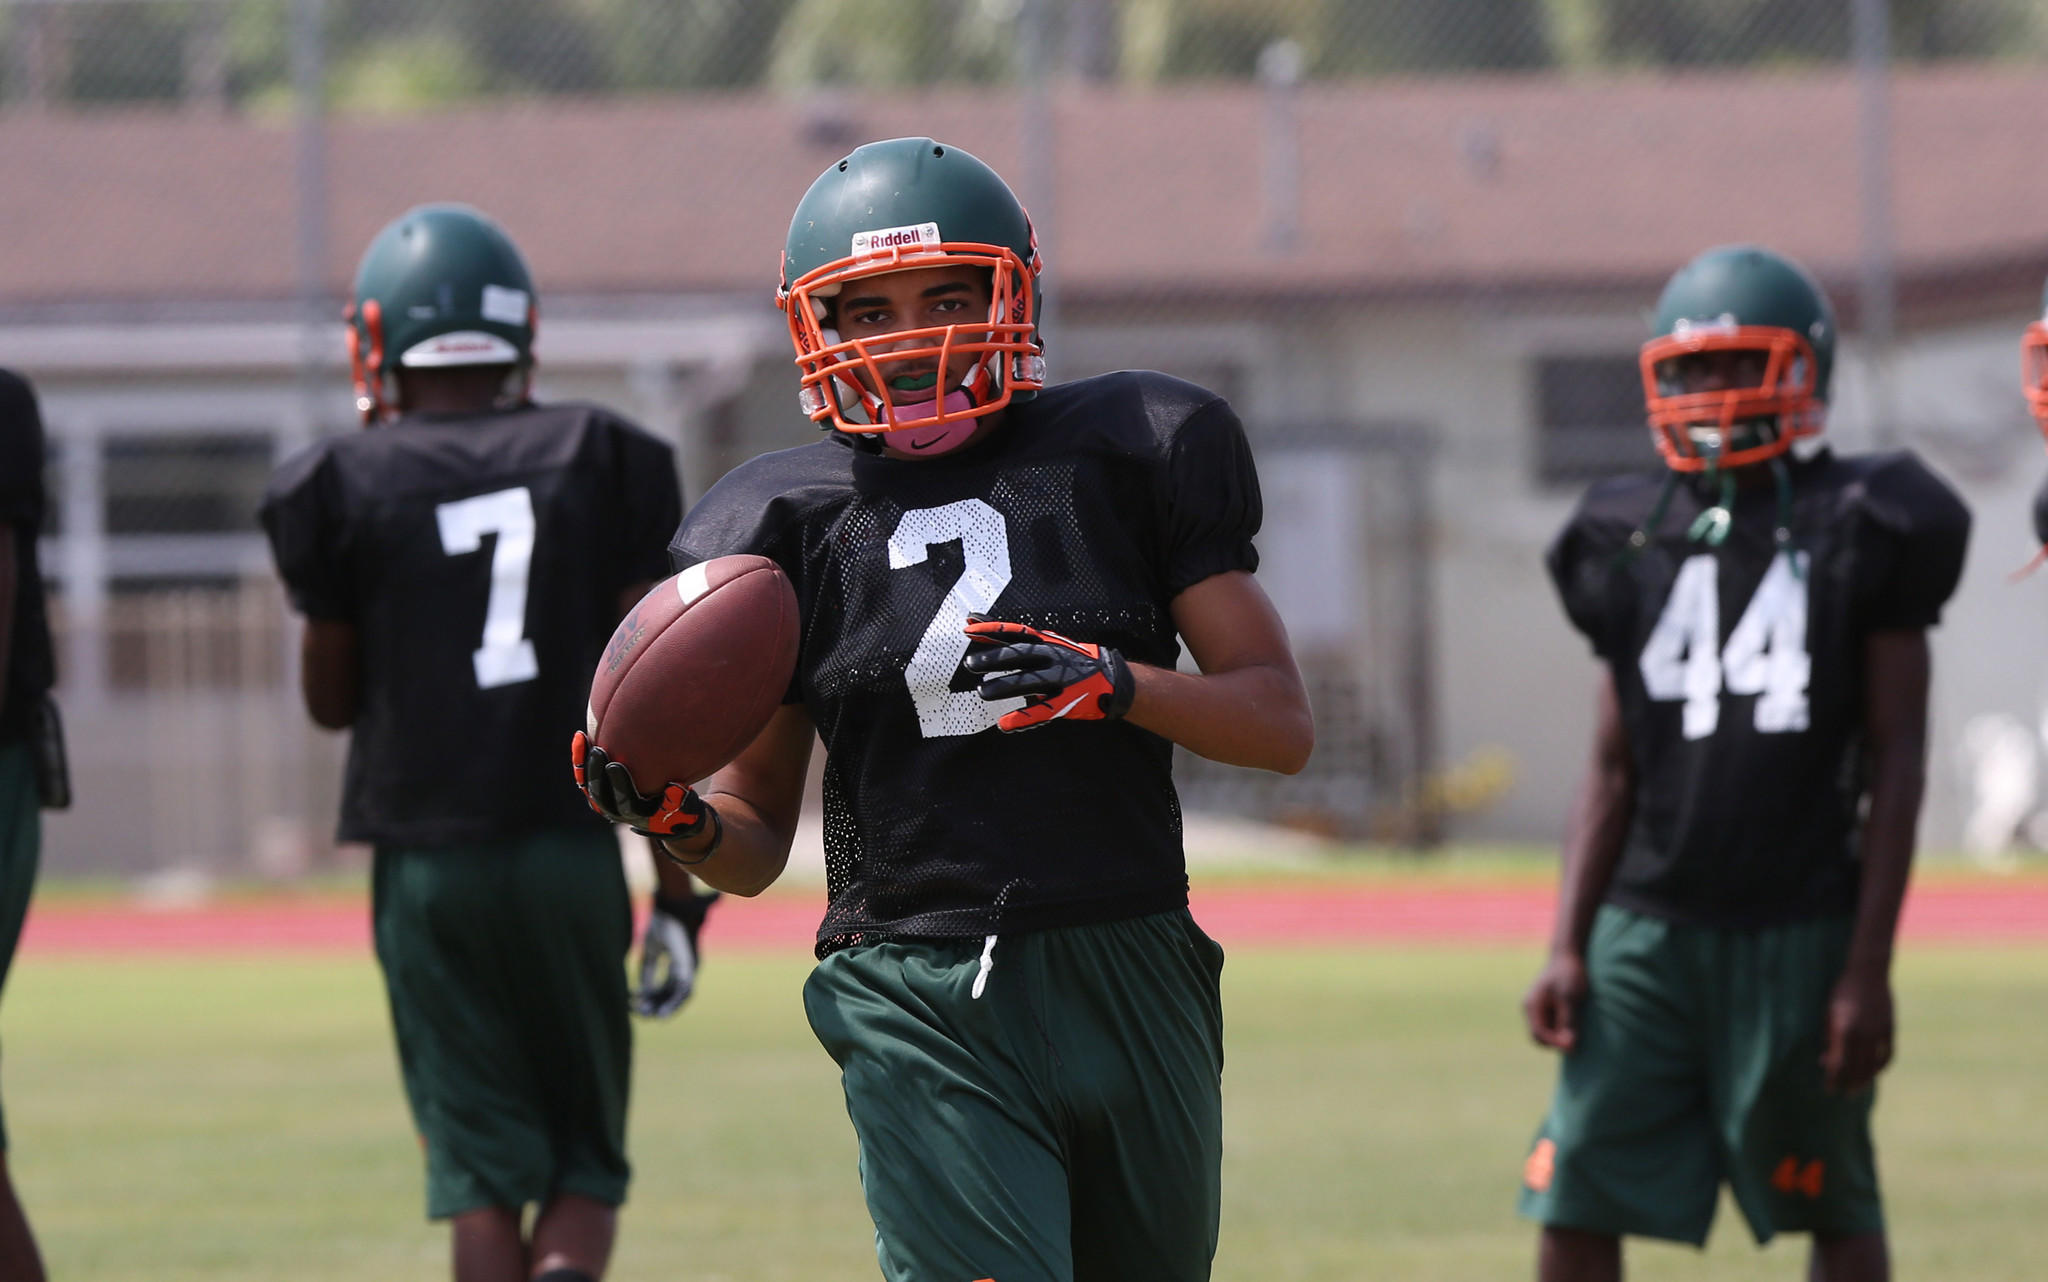 McArthur is one of the teams playing this weekend. Malik Wisdom of McArthur warms up during spring drills.